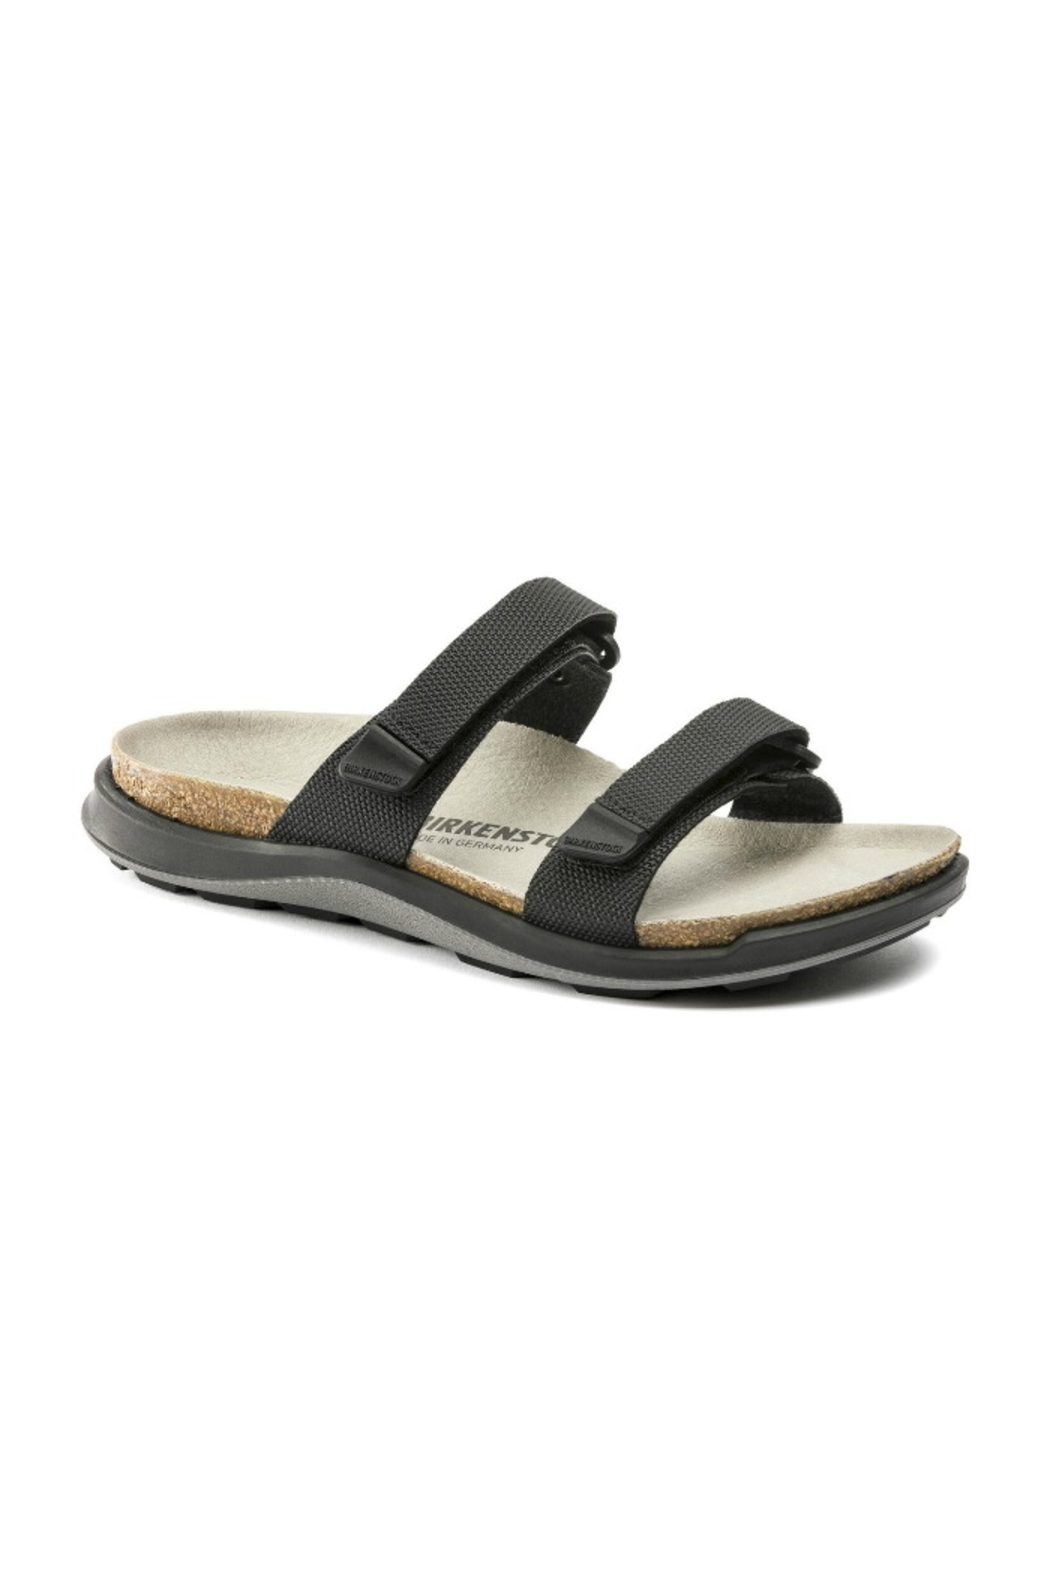 Birkenstock Sahara Narrow Width in Futura Black - Front Cropped Image